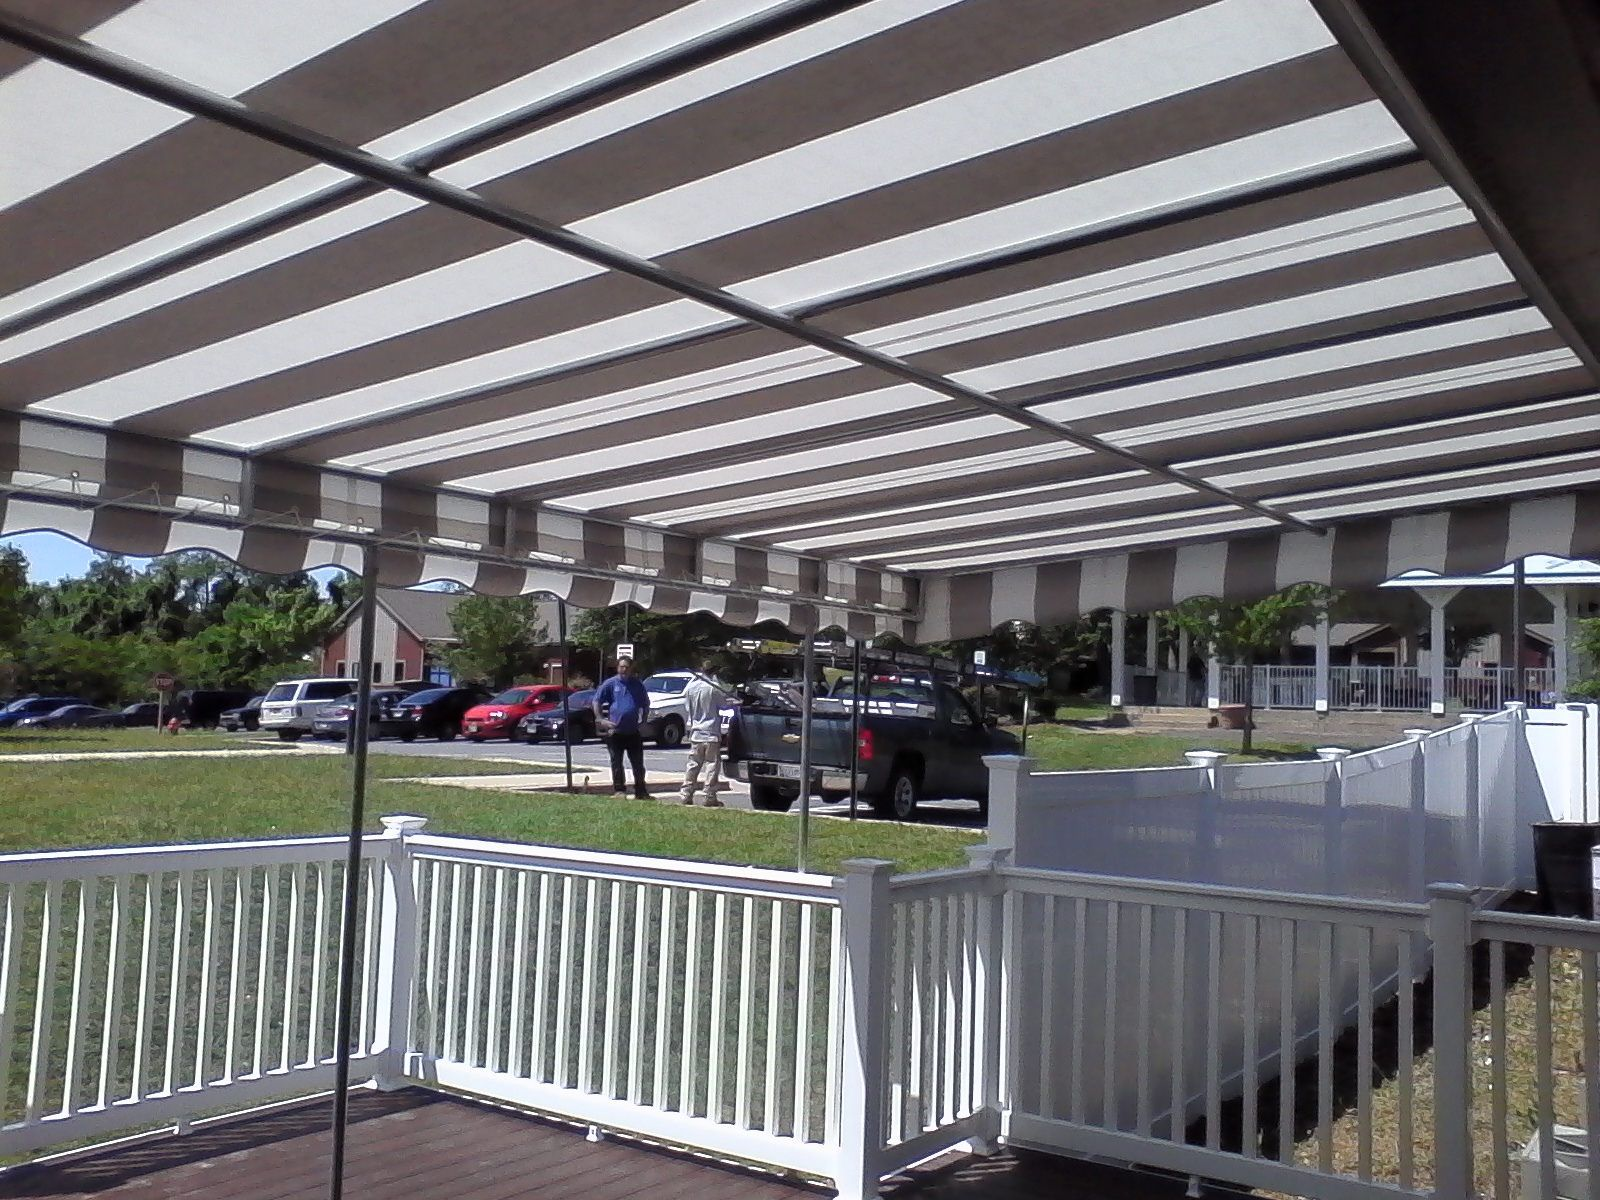 Https Flic Kr Ps Tbr6x Hoffmanawning S Photostream Patio Awning Awning Porch Patio